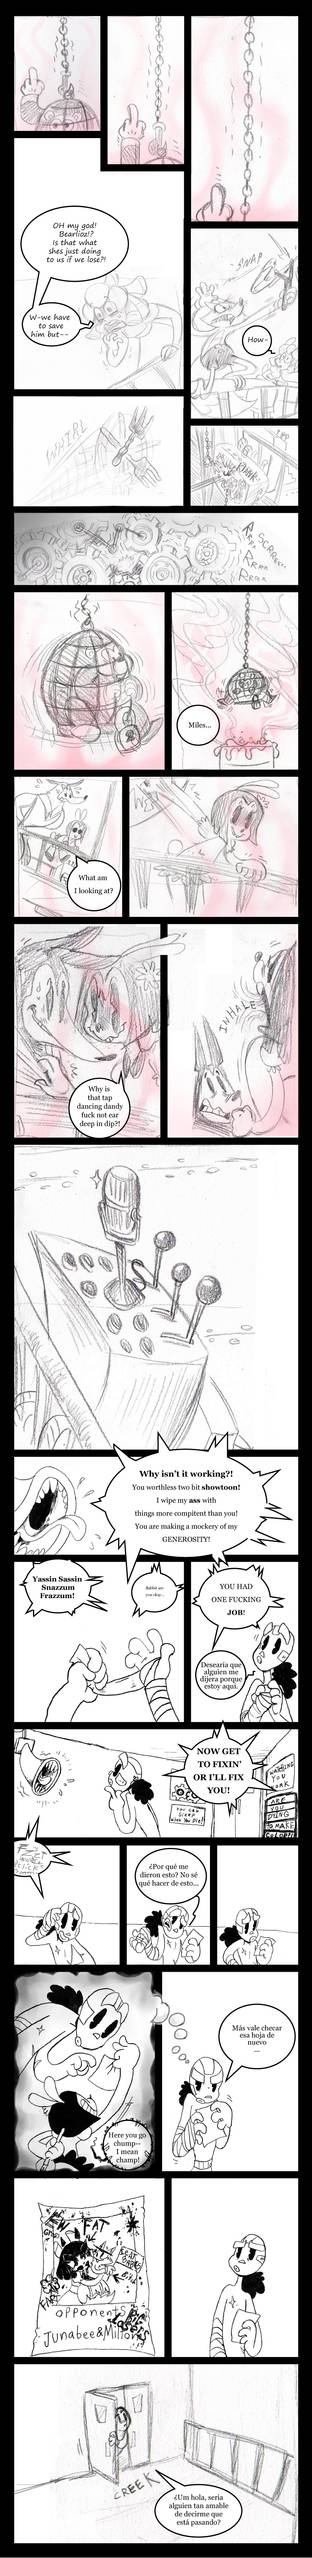 Round 2 Toons Jalapeno Business pg 5